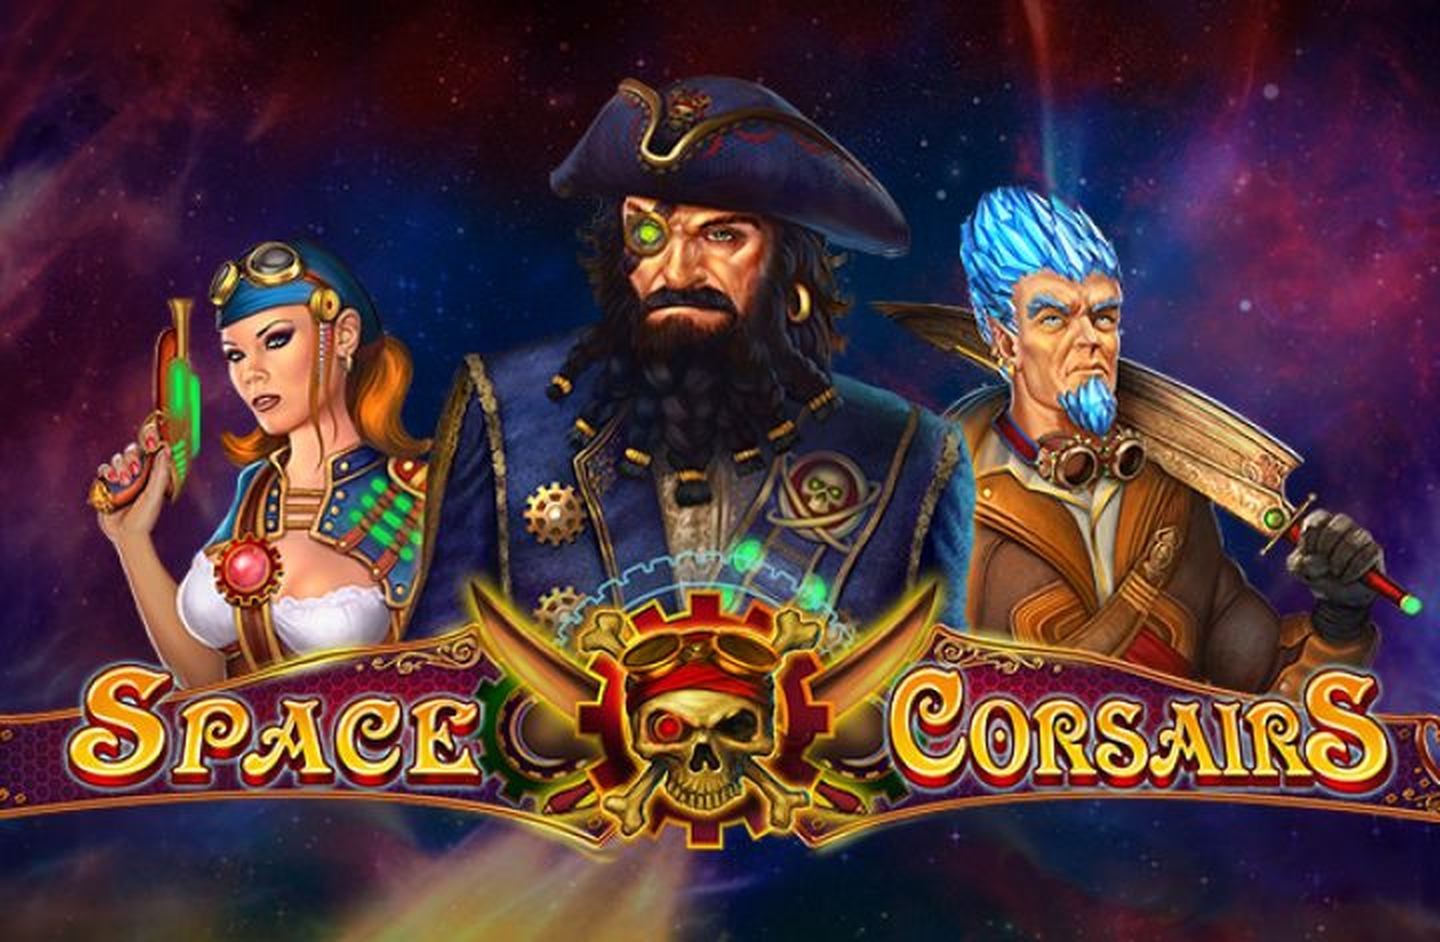 The Space Corsairs Online Slot Demo Game by Playson